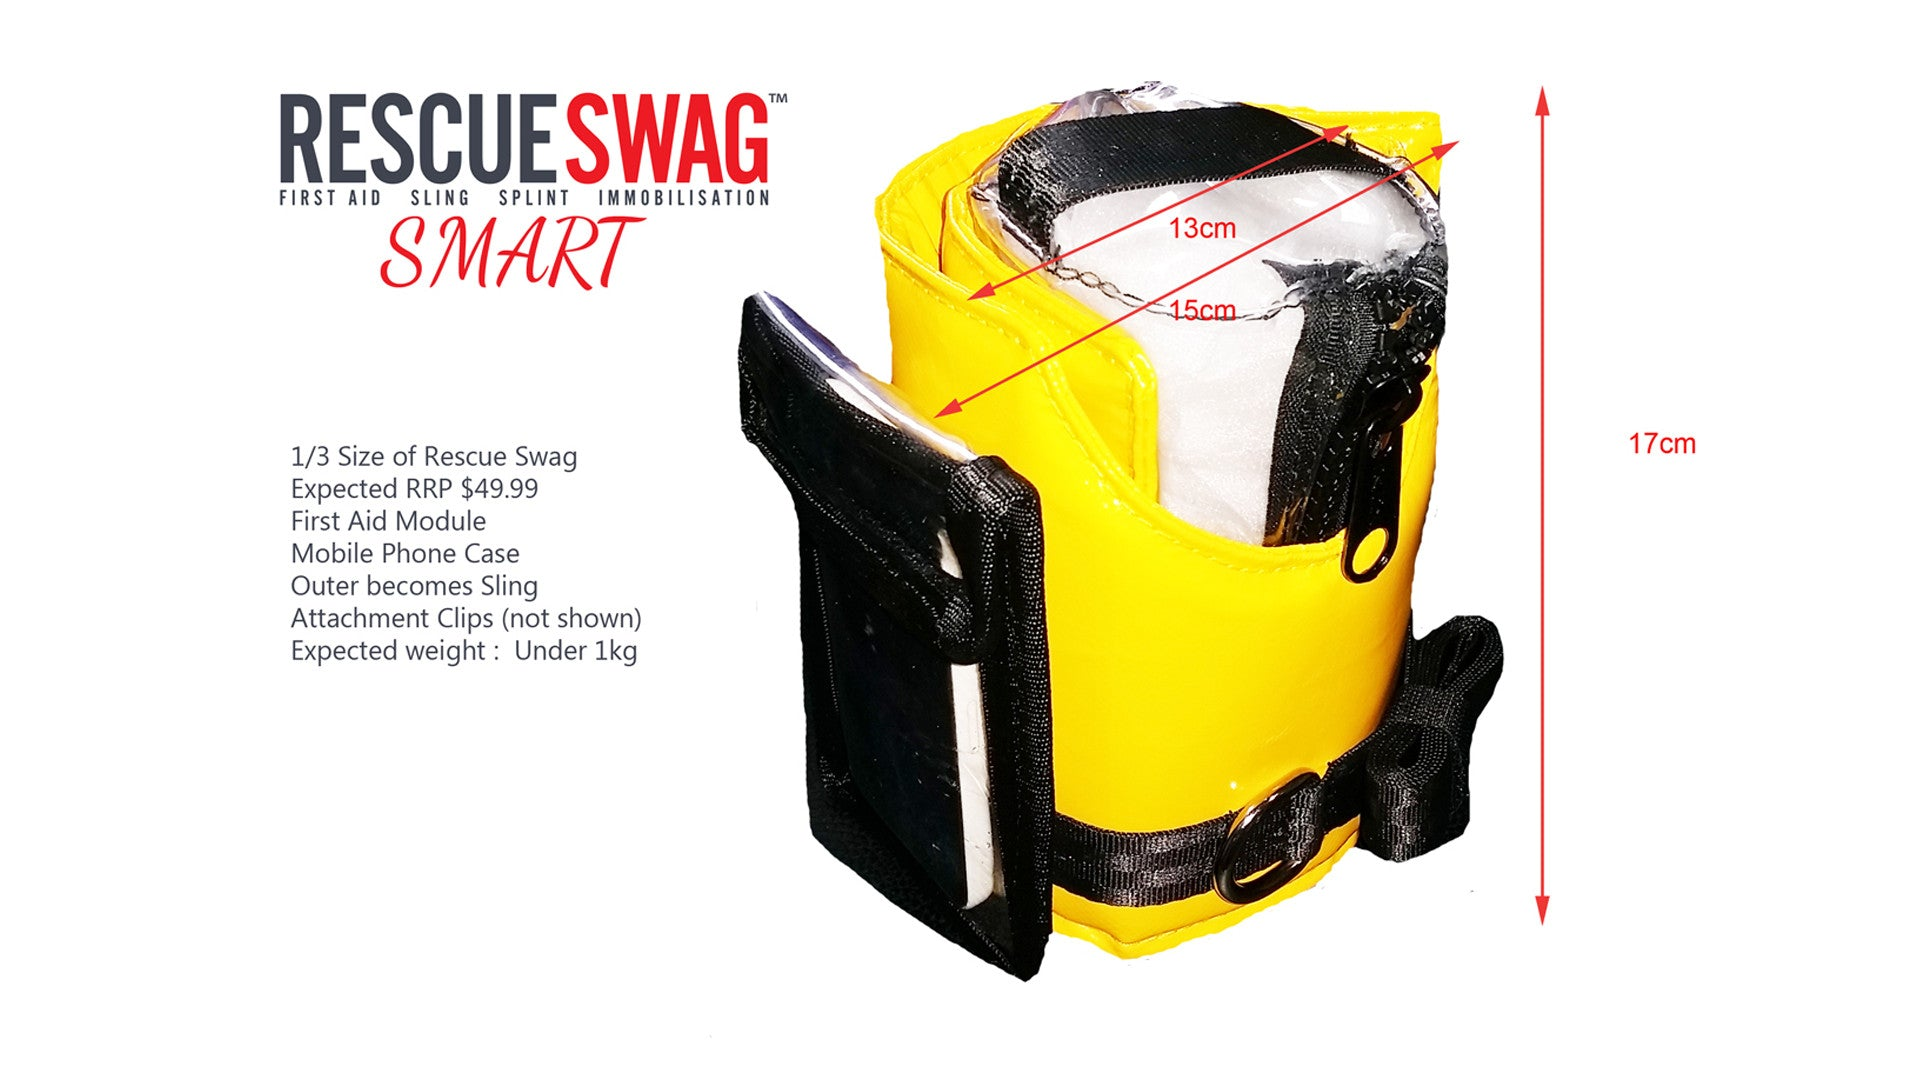 RESCUE SWAG IGNITE IDEAS FUND RECIPIENT